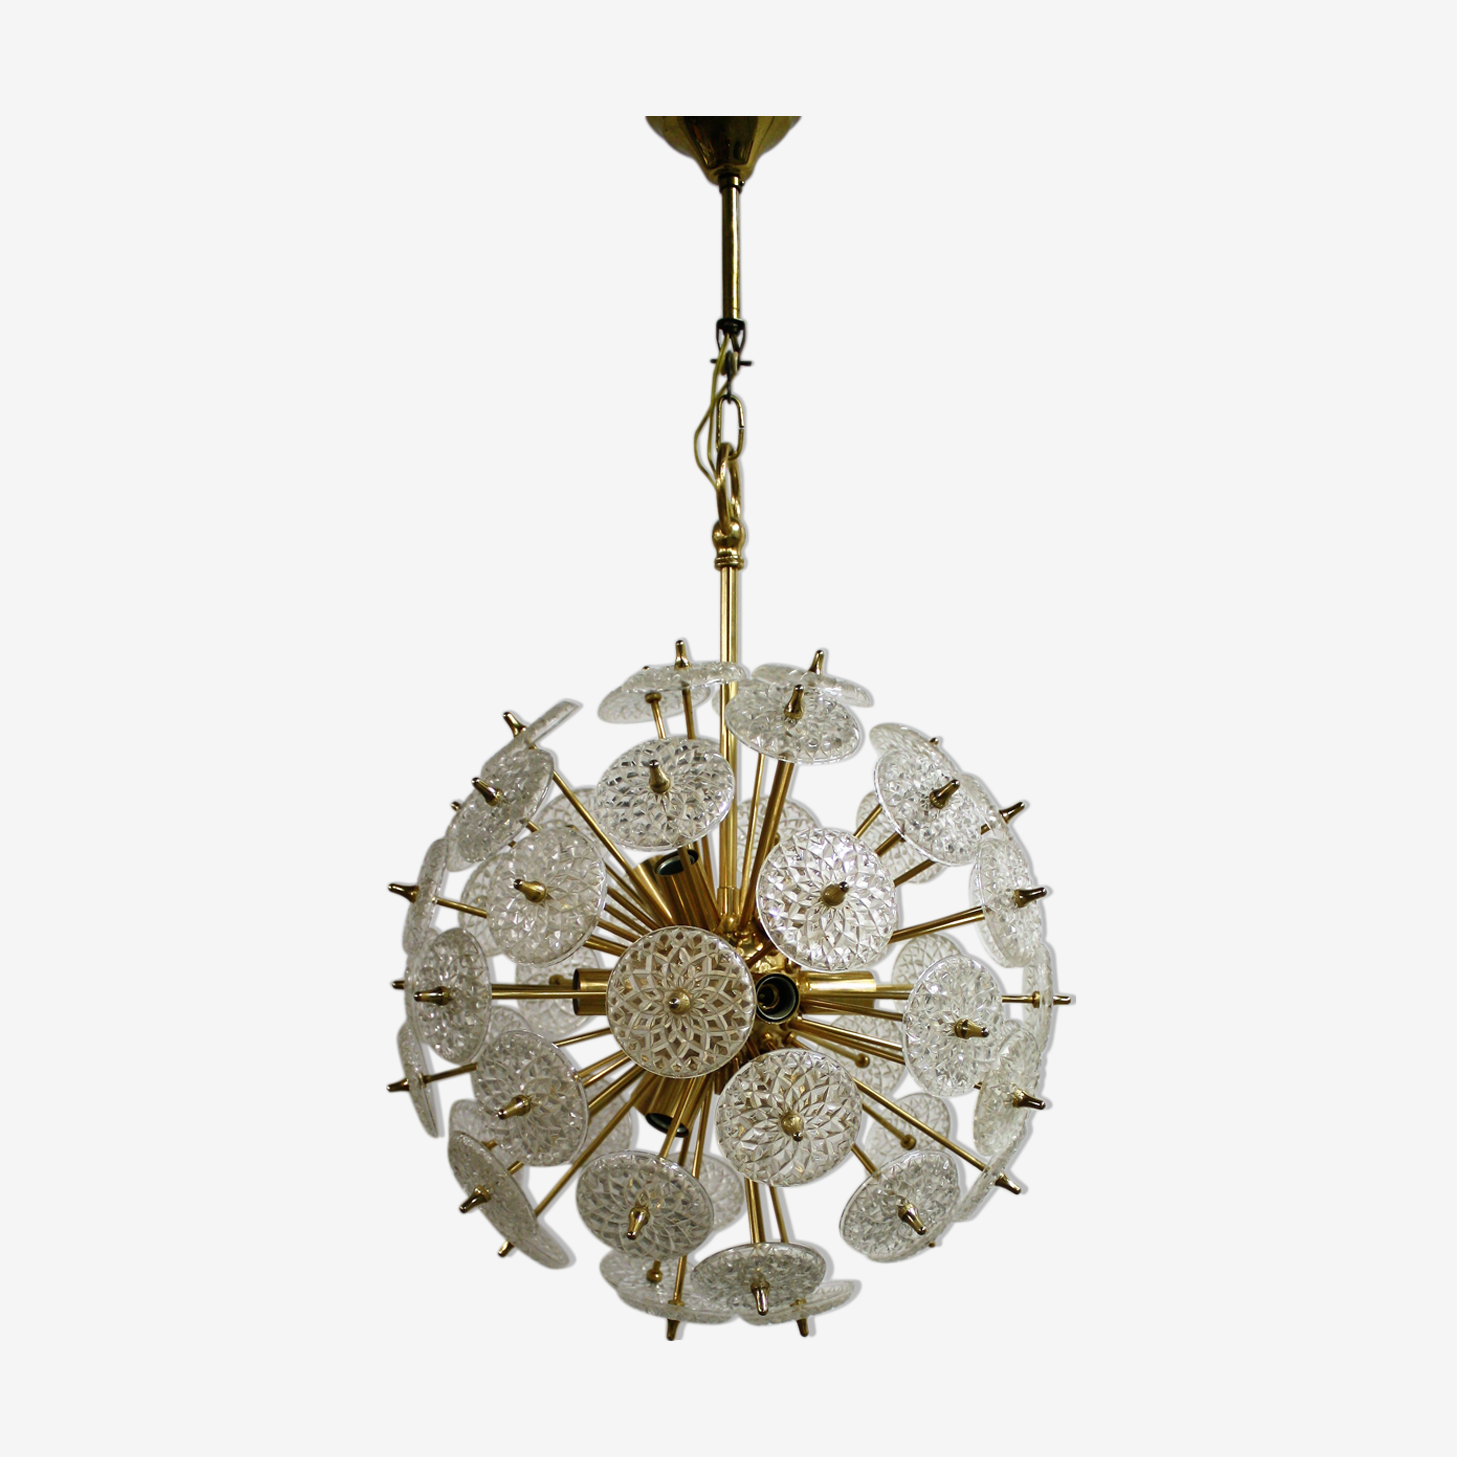 Mid century brass and crystal sputnik chandelier by Val St. lambert, 1950 s